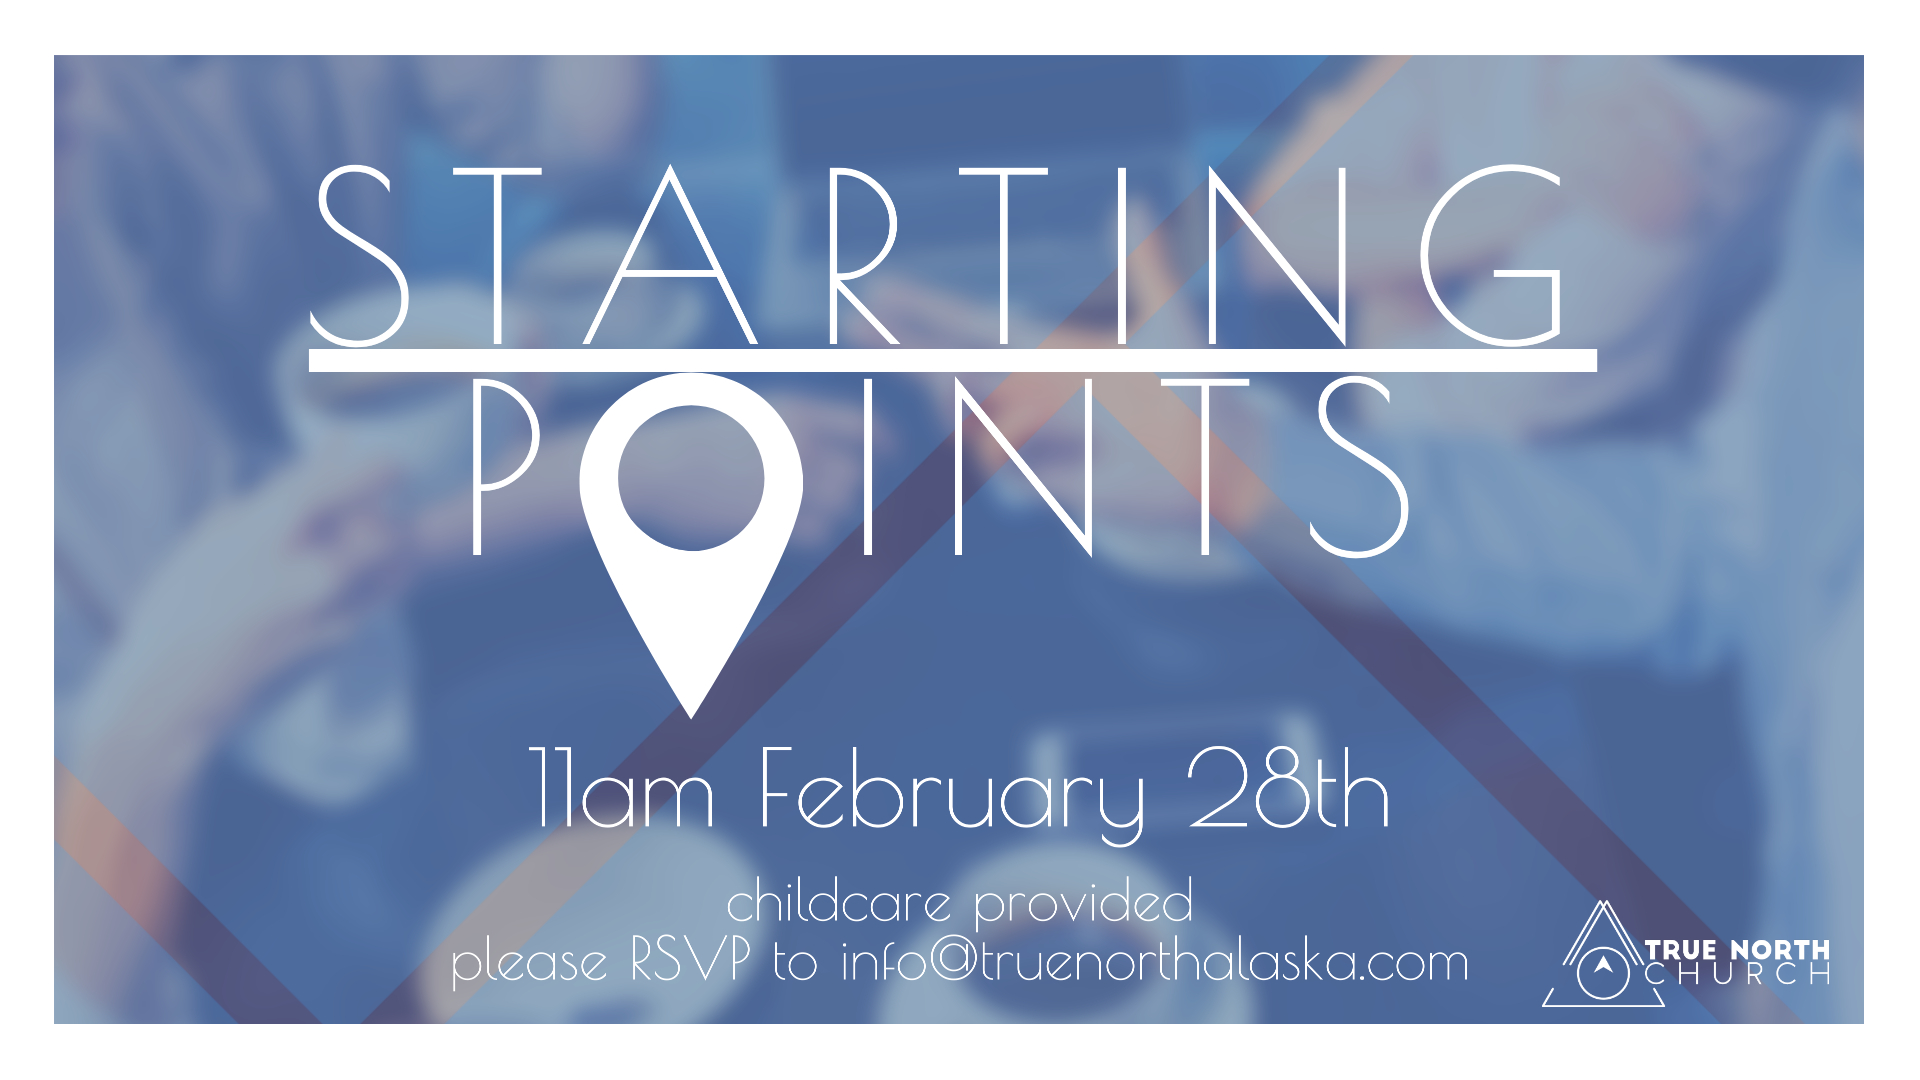 Starting Points Announcement image